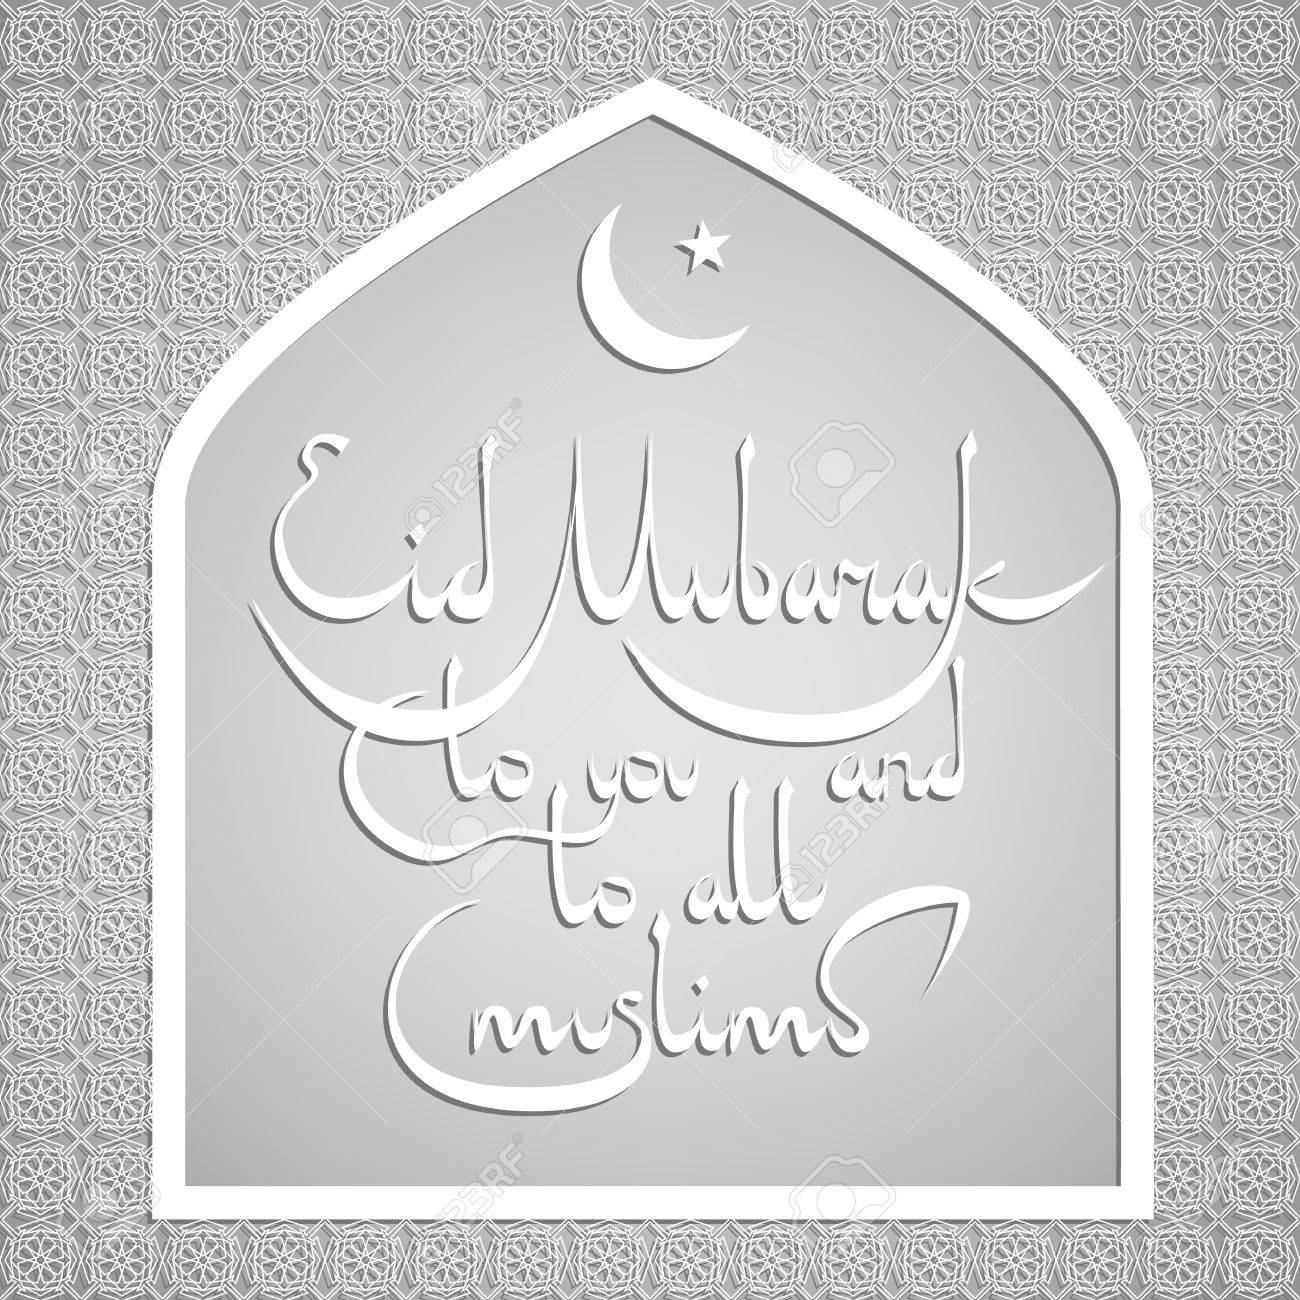 Greetings Card For Muslim Religious Holiday Eid Al Fitr Royalty Free